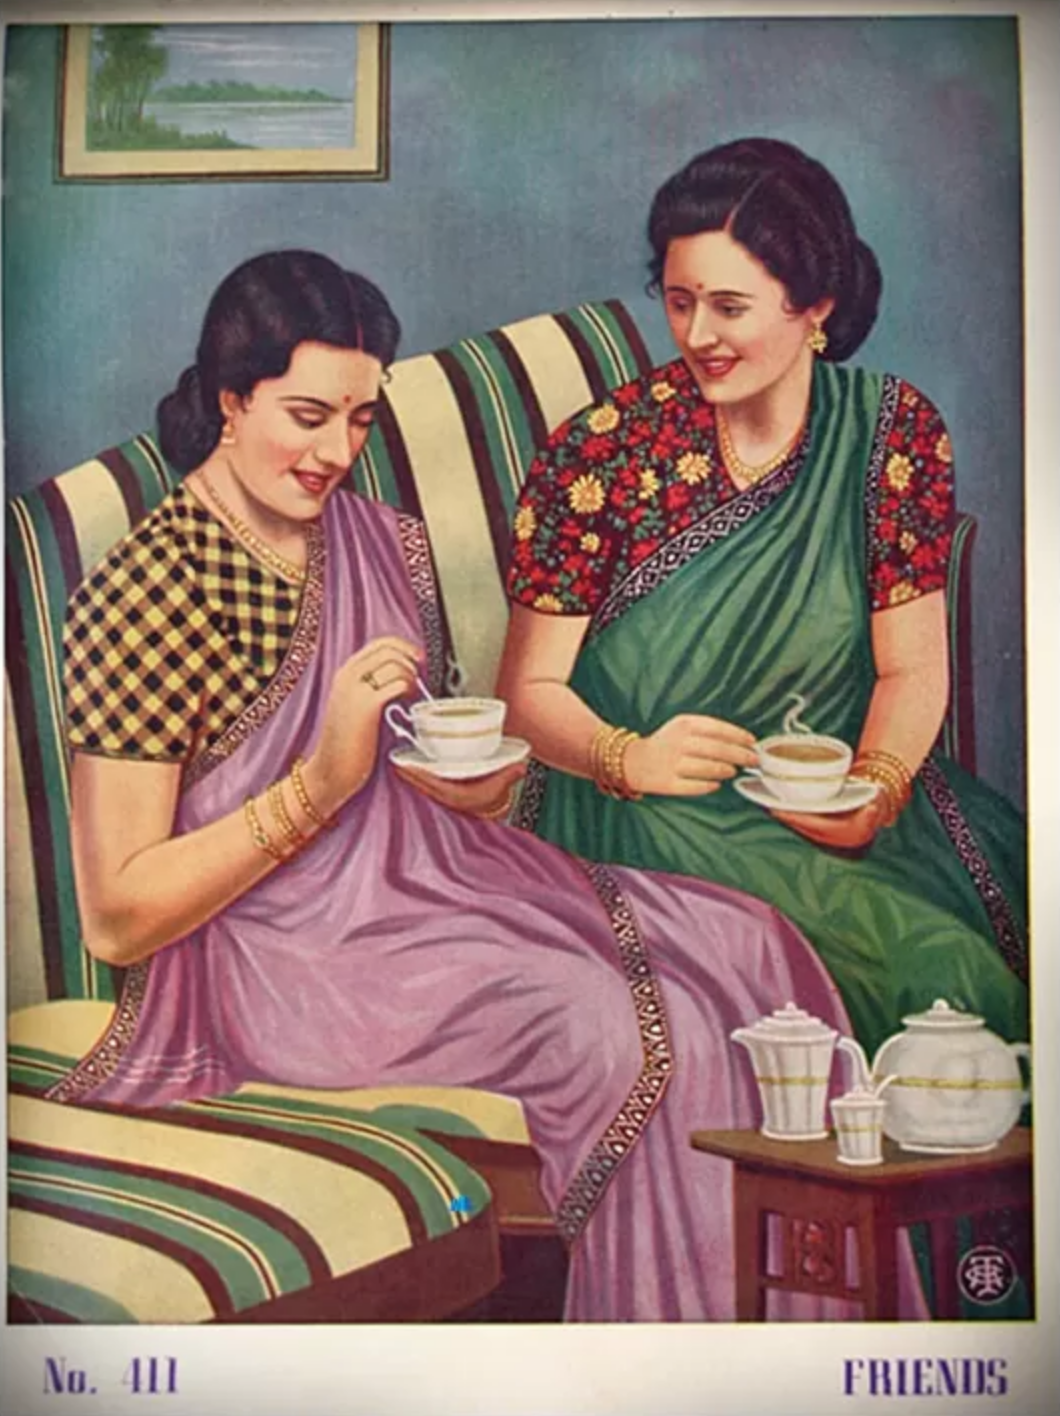 illustration poster of two Indian women sitting on a couch and having tea